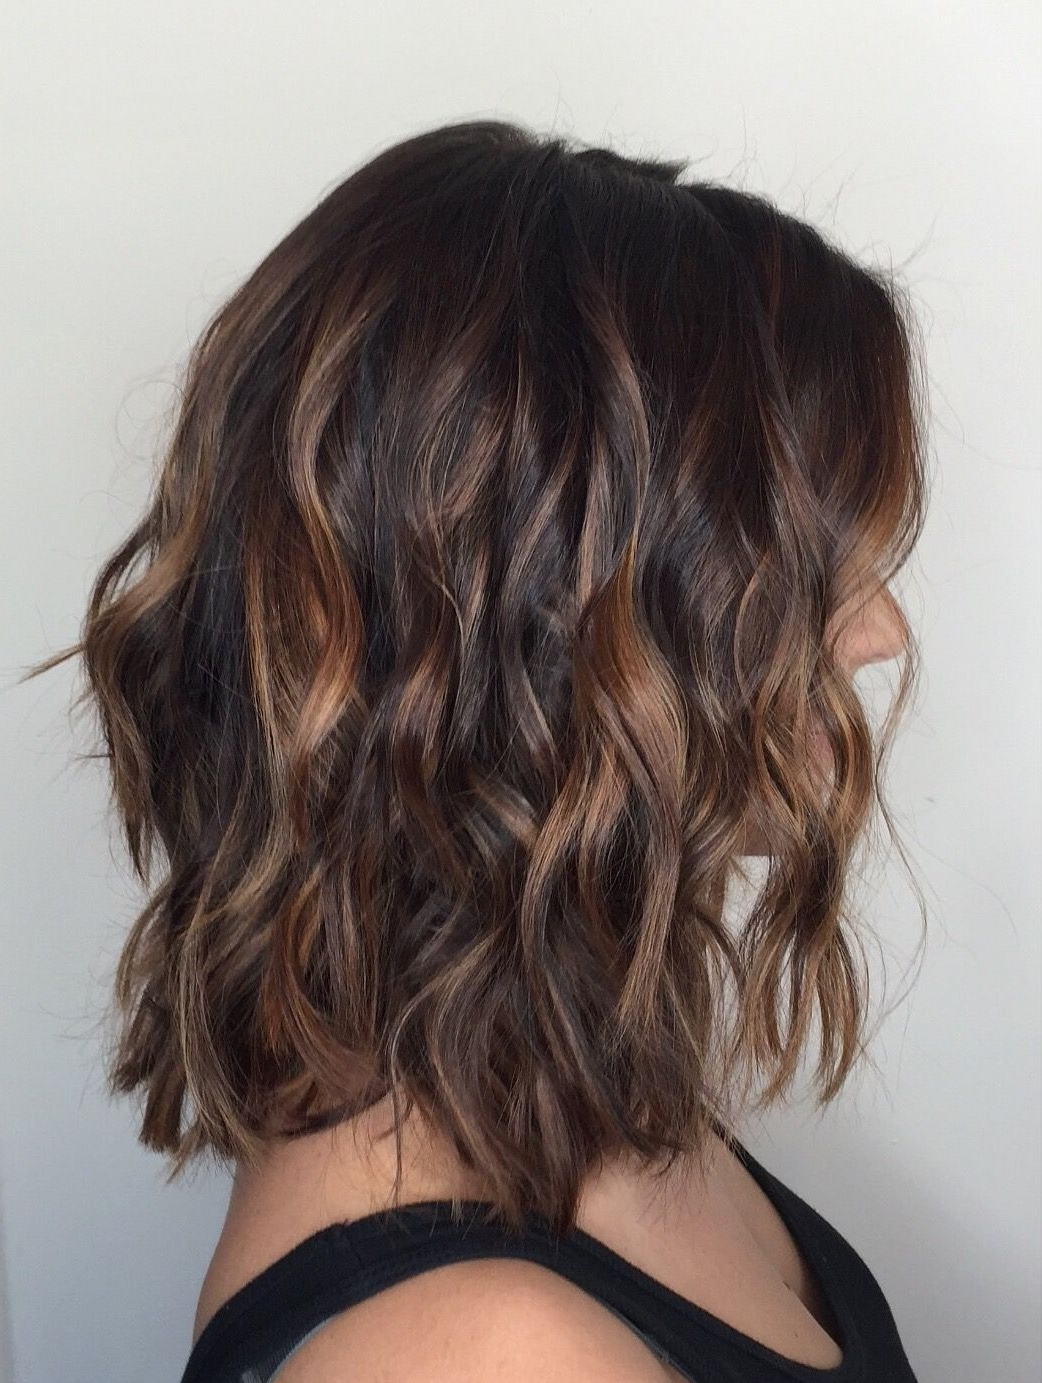 46 Look For Balayage Short Hairstyle   Hair   Pinterest   Hair, Hair Pertaining To Short Hairstyles With Balayage (View 6 of 25)